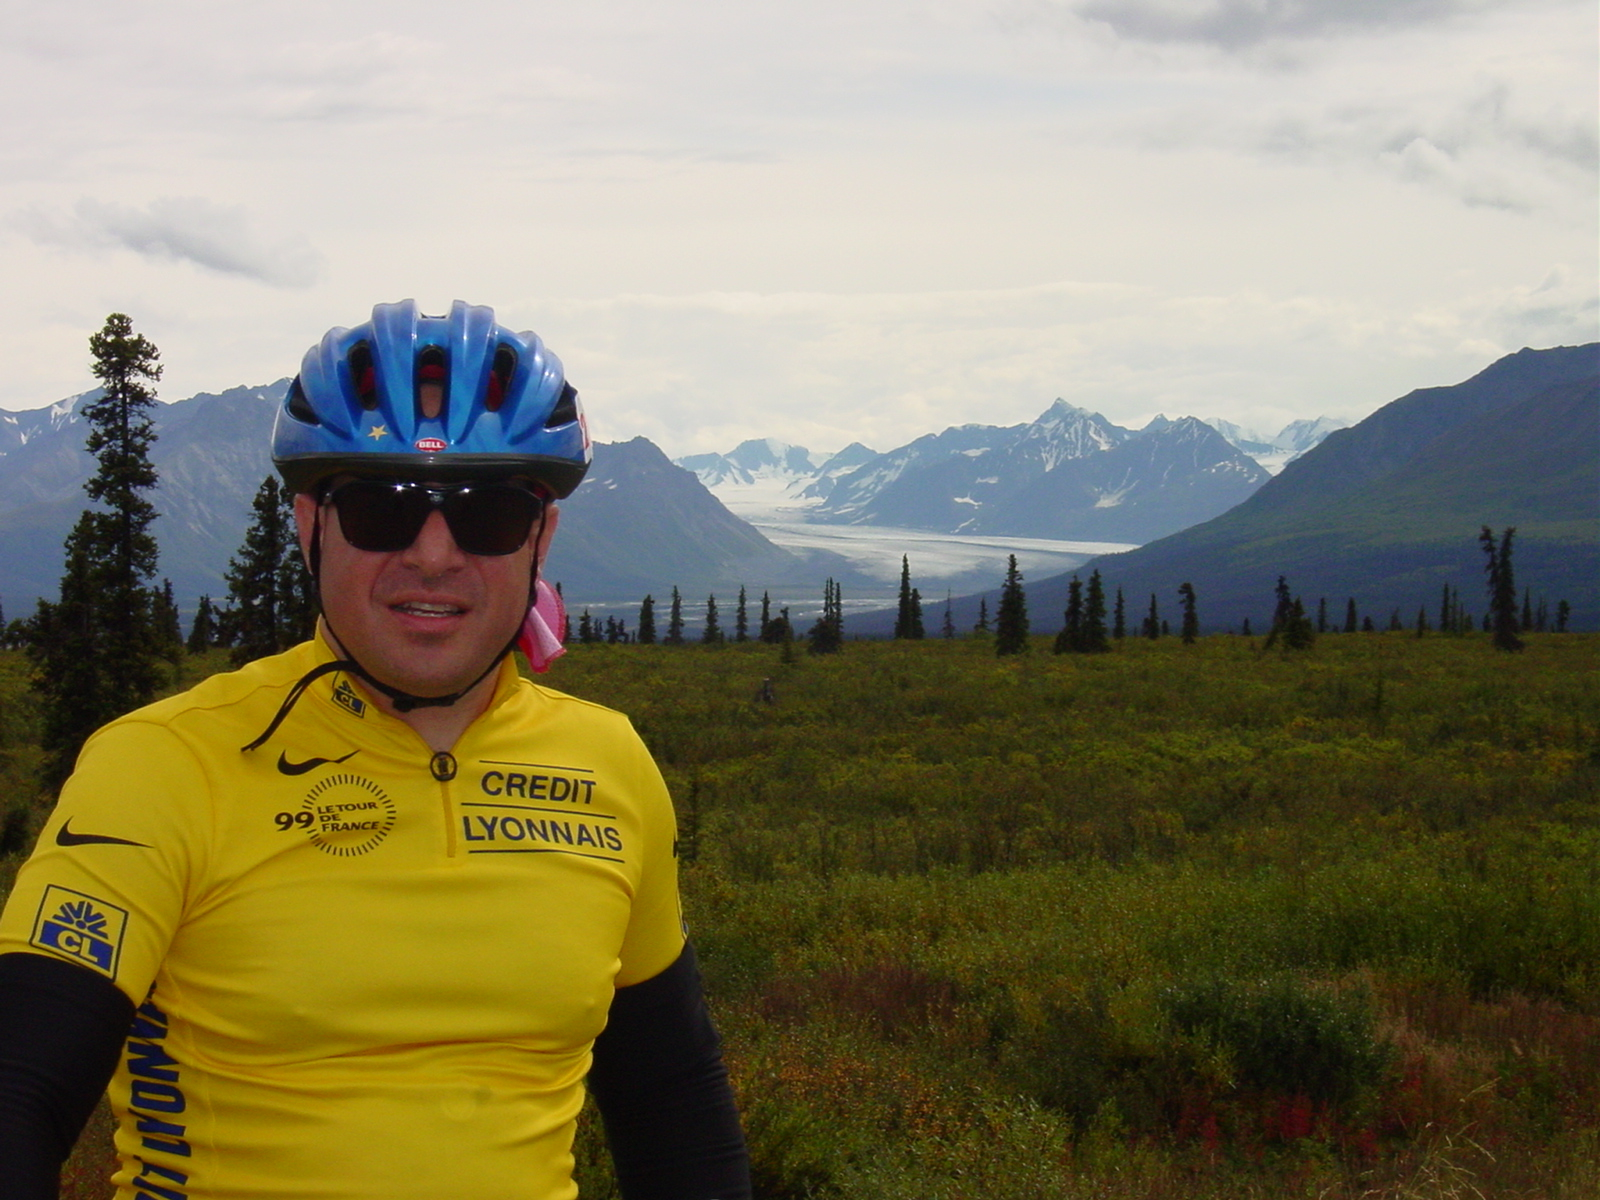 Mike the Bike at the glaciers